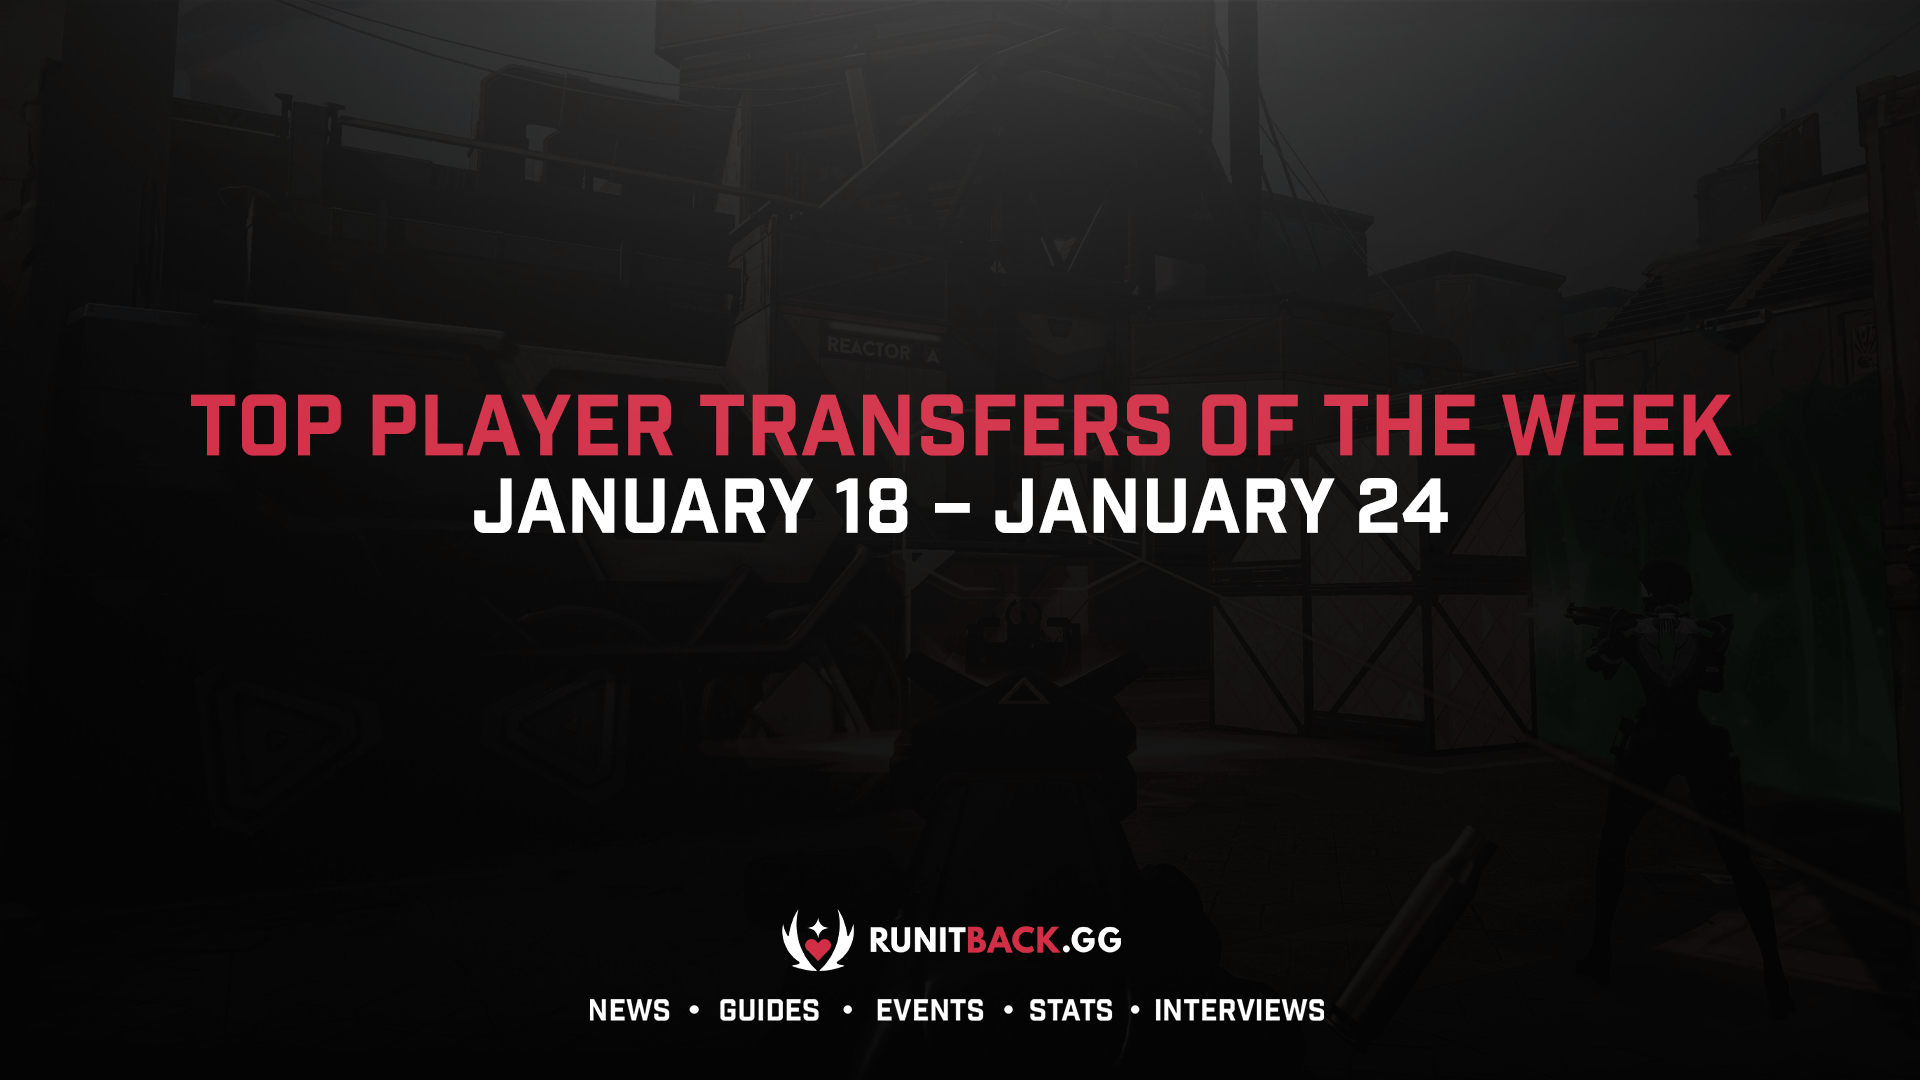 Top Player Transfers of the Week: January 18 – January 24